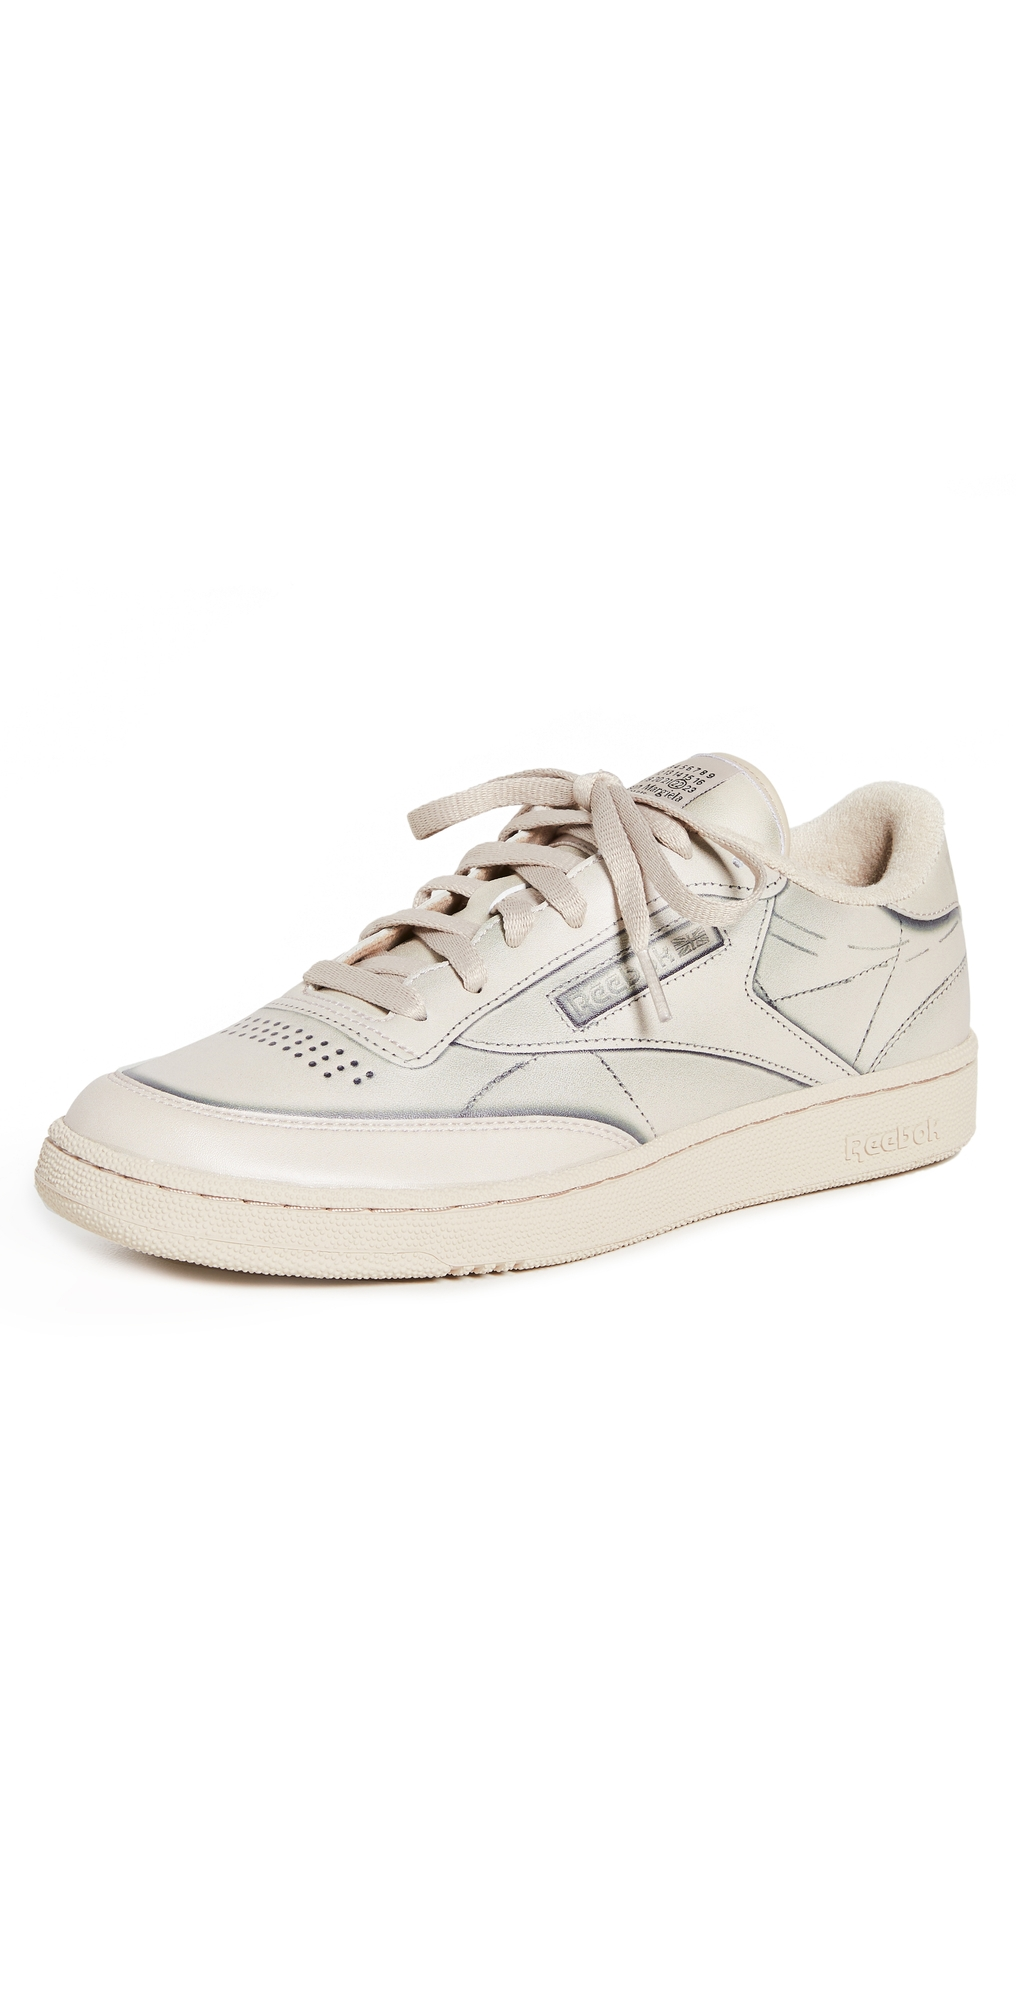 Project 0 Club C Leather Sneakers